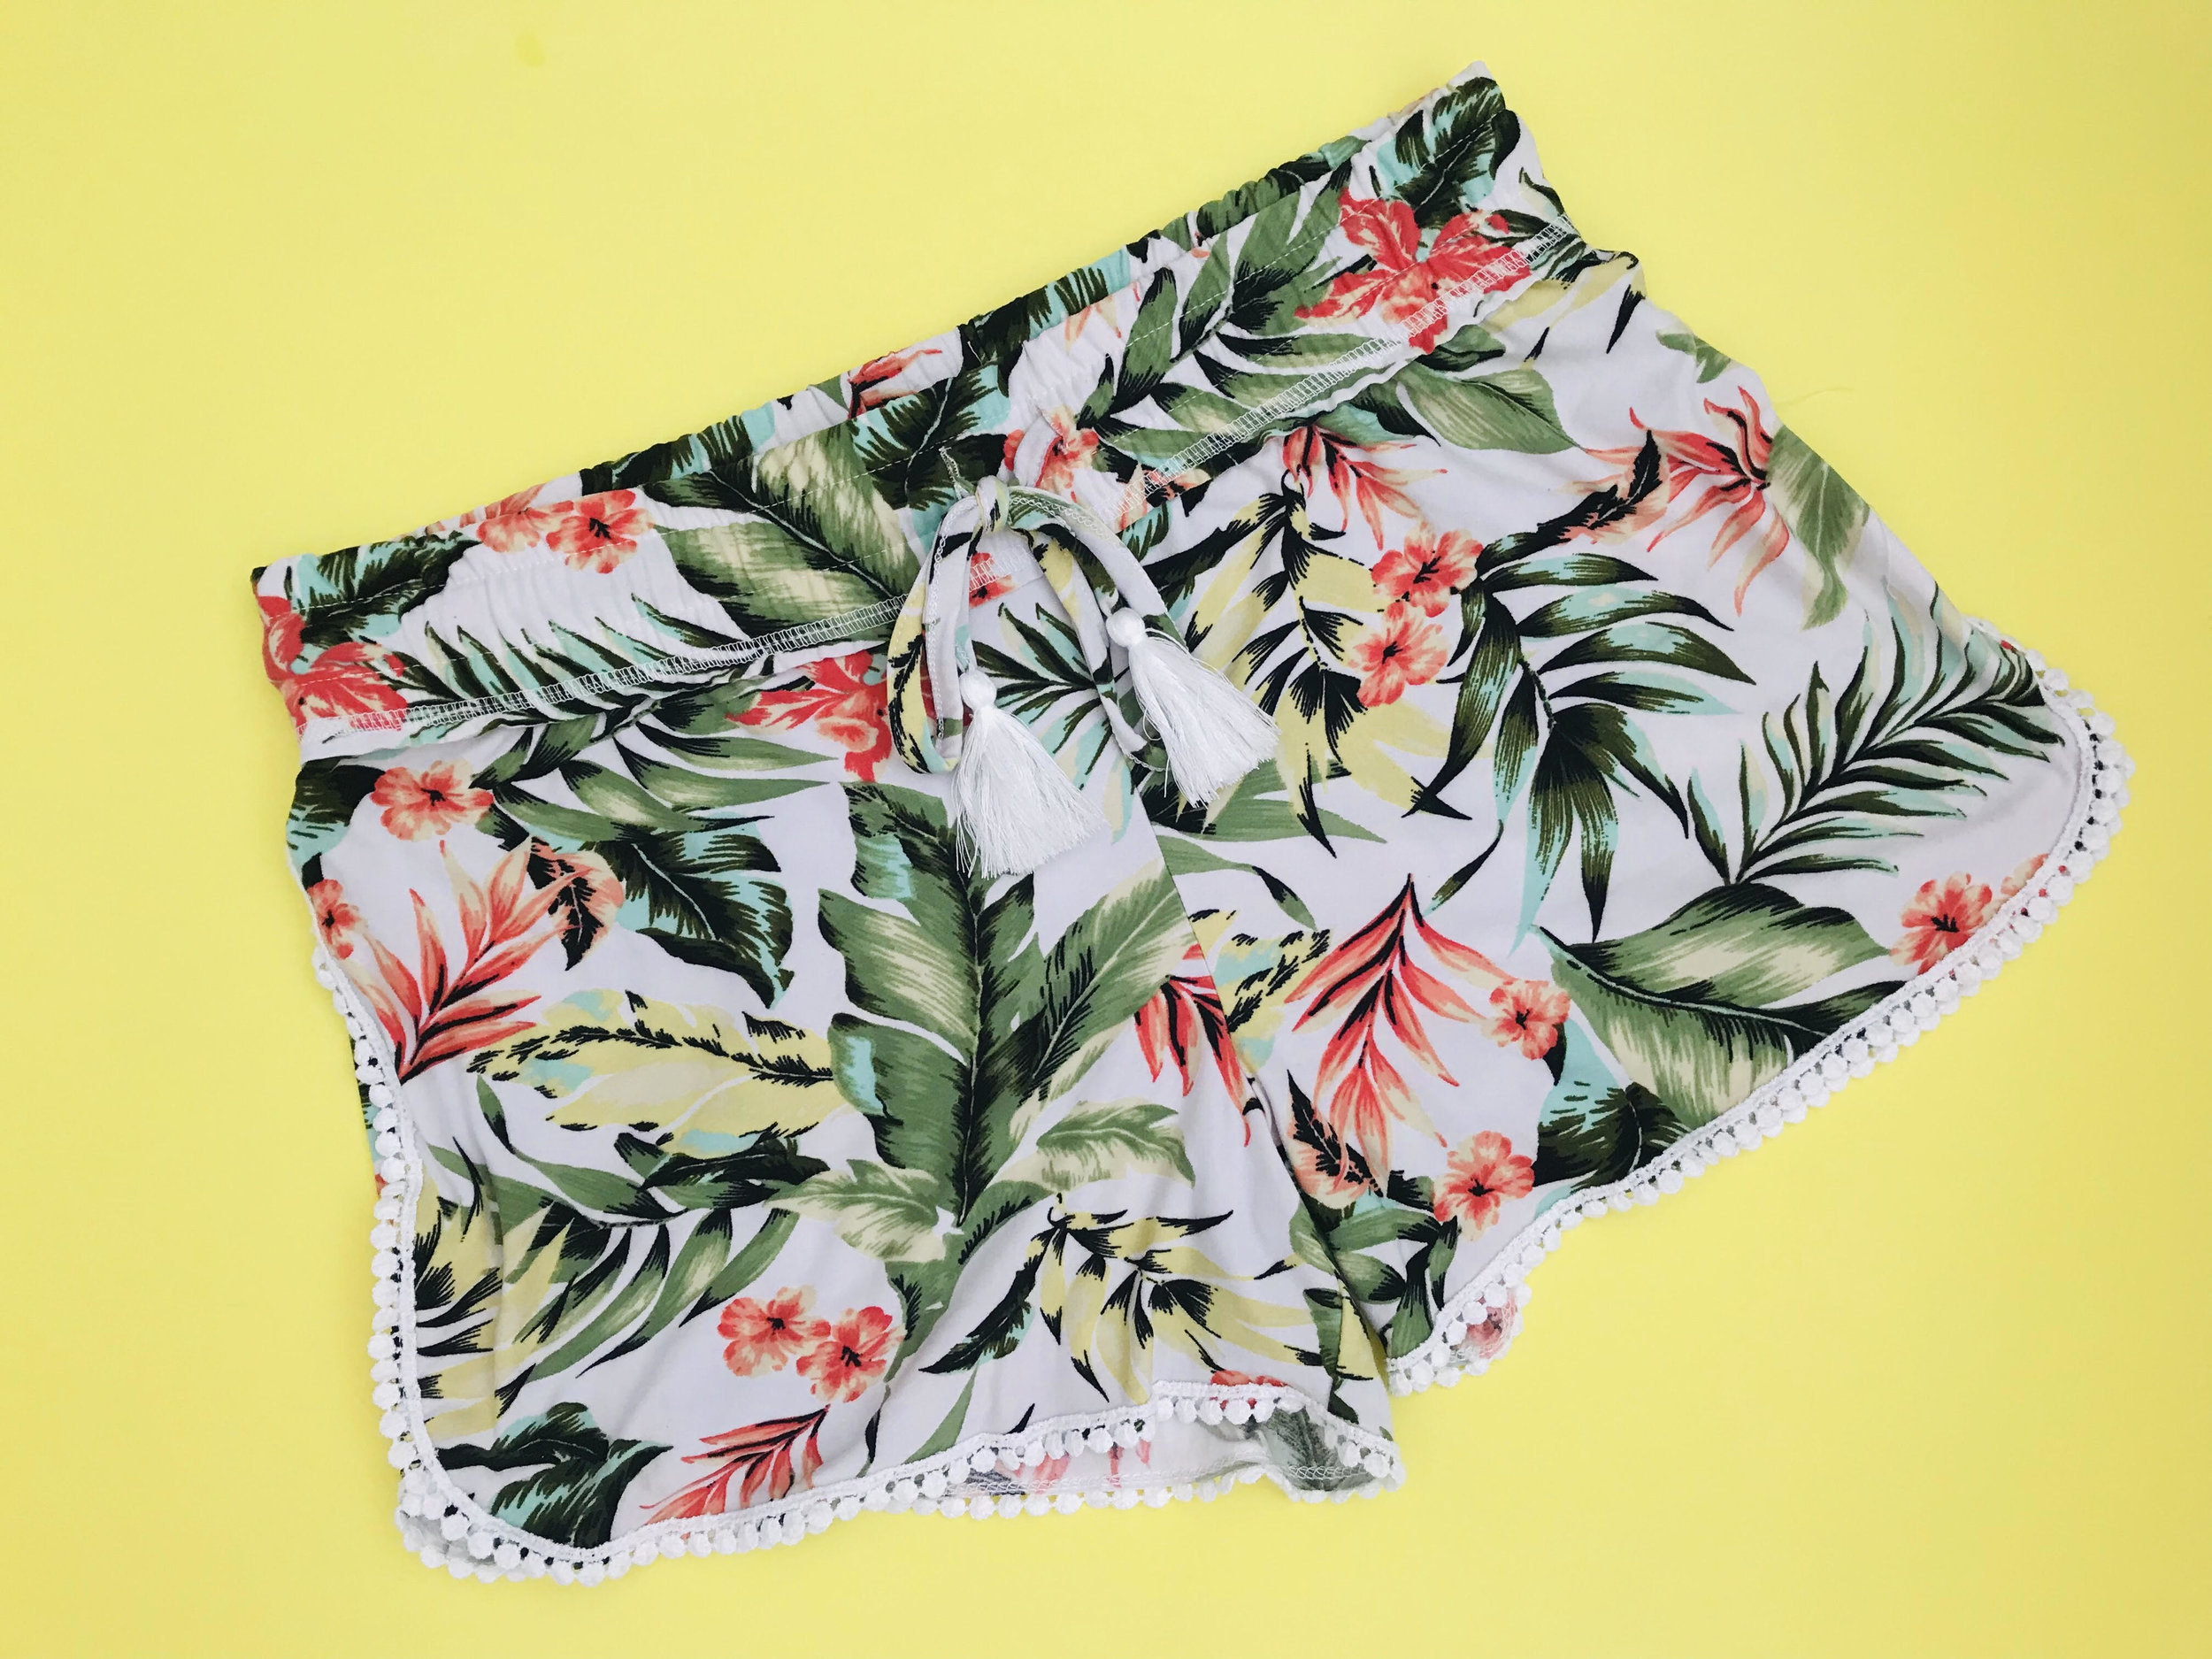 4. Floral Shorts - Found at one of my favorite stores to explore in my hometown, Gabriel Brothers. I used to love going here in high school and finding cheap, unique items. There's a Gabe's here in Columbus now in Dublin!Price: $5.99Gabriel Brothers